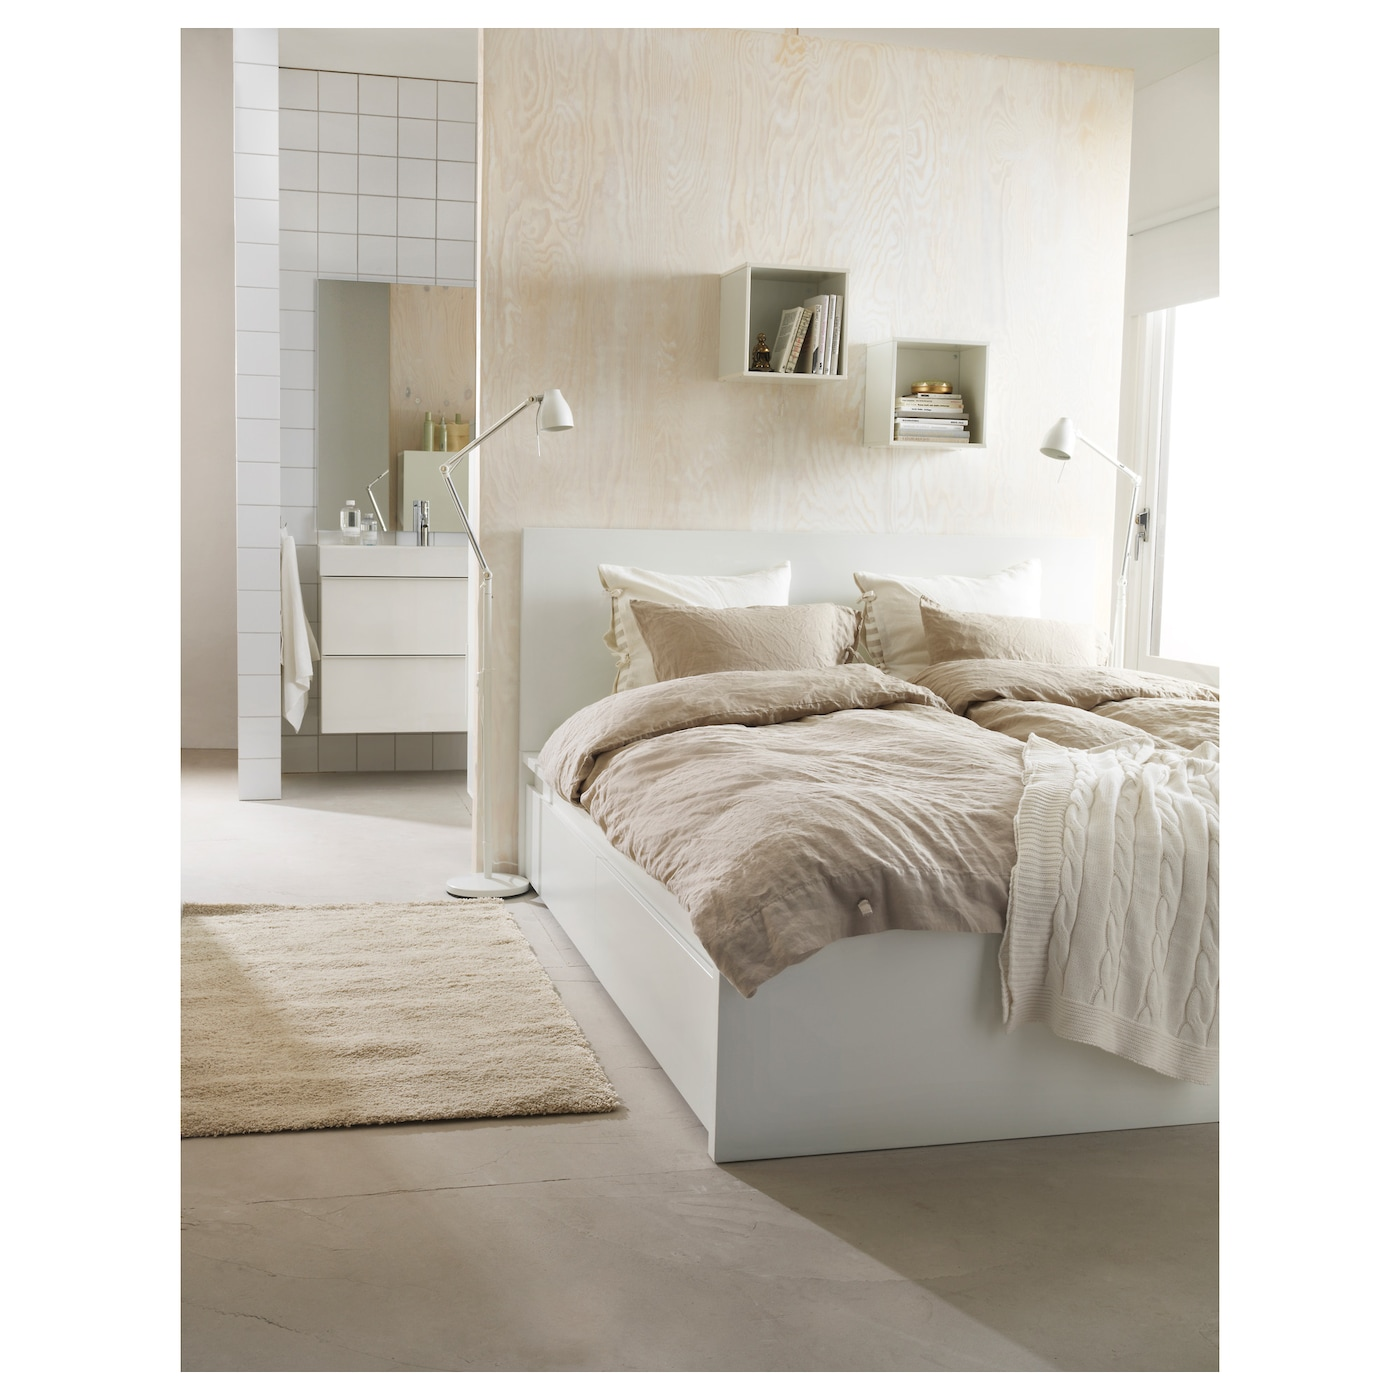 White bed frame with storage - Ikea Malm Bed Frame With 4 Storage Boxes